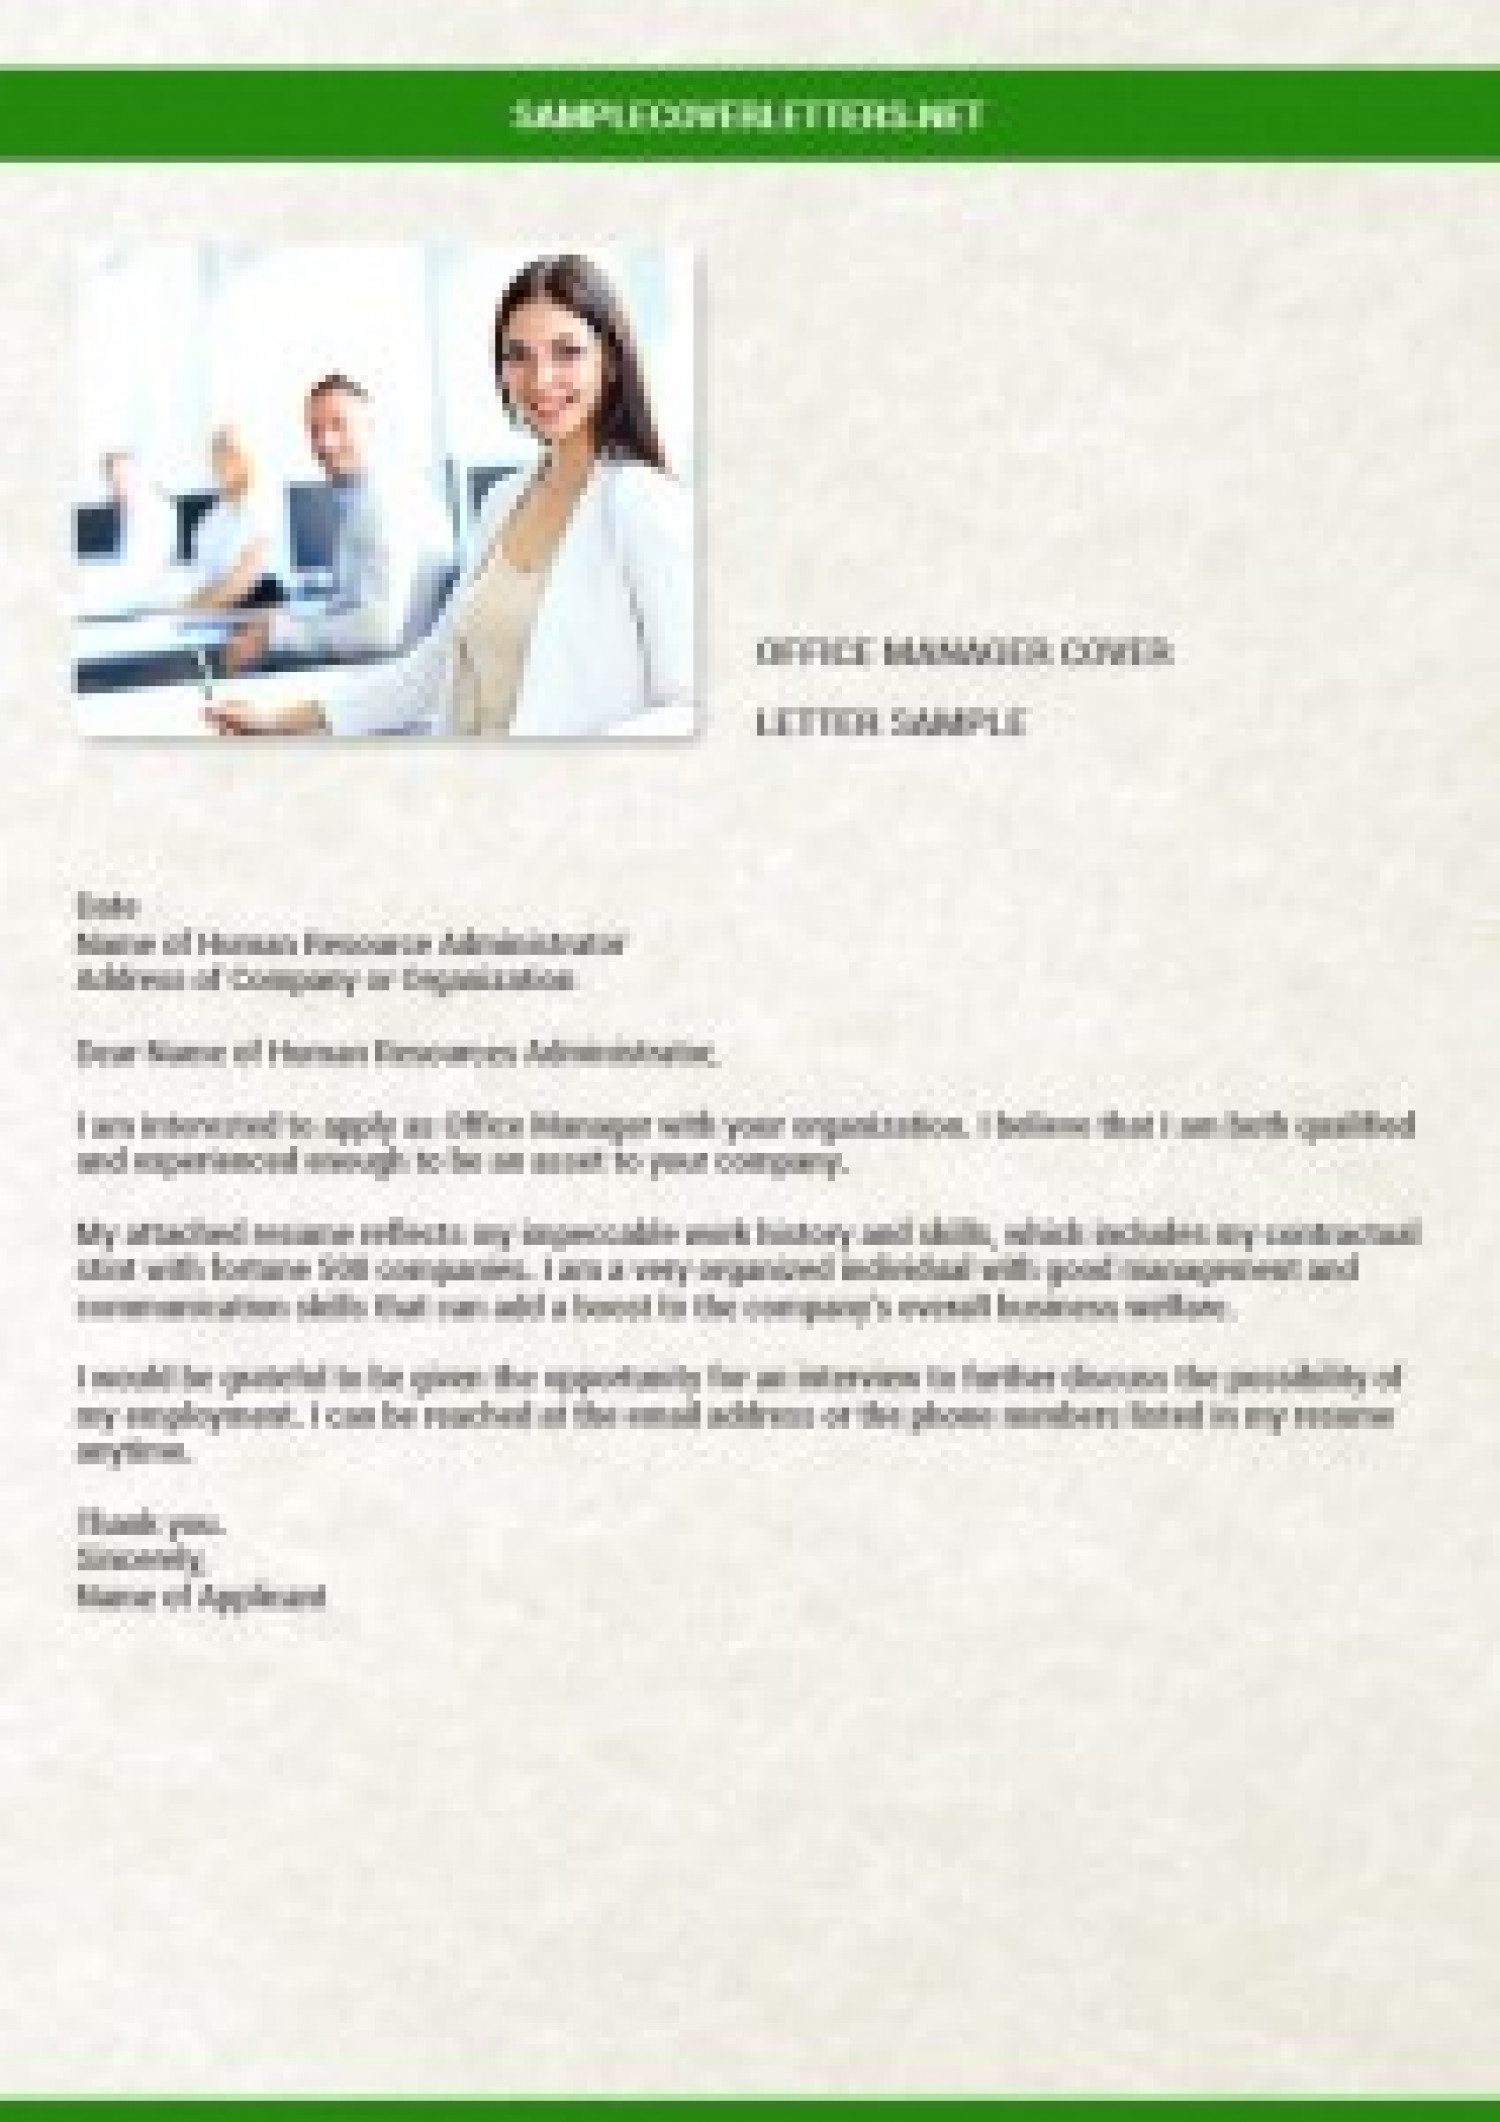 fice Manager Cover Letters fice Manager Cover Letter